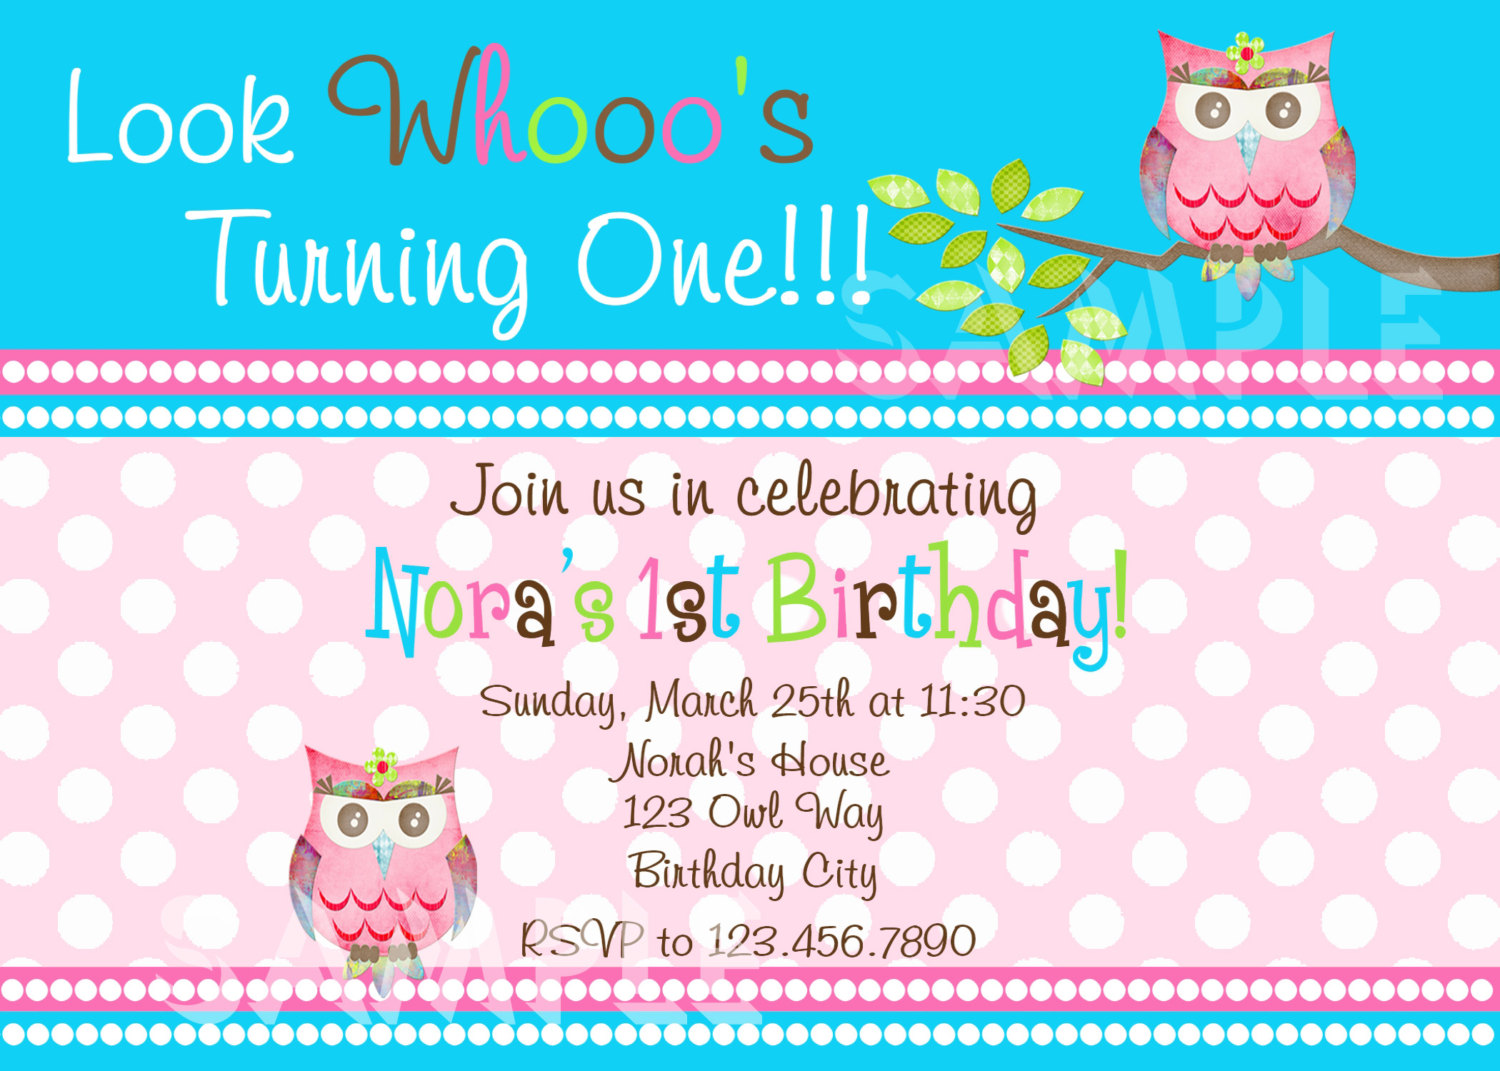 Delighted first birthday owl invitations contemporary invitation printable 1st birthday invitations girls owl party photo invitation filmwisefo Image collections